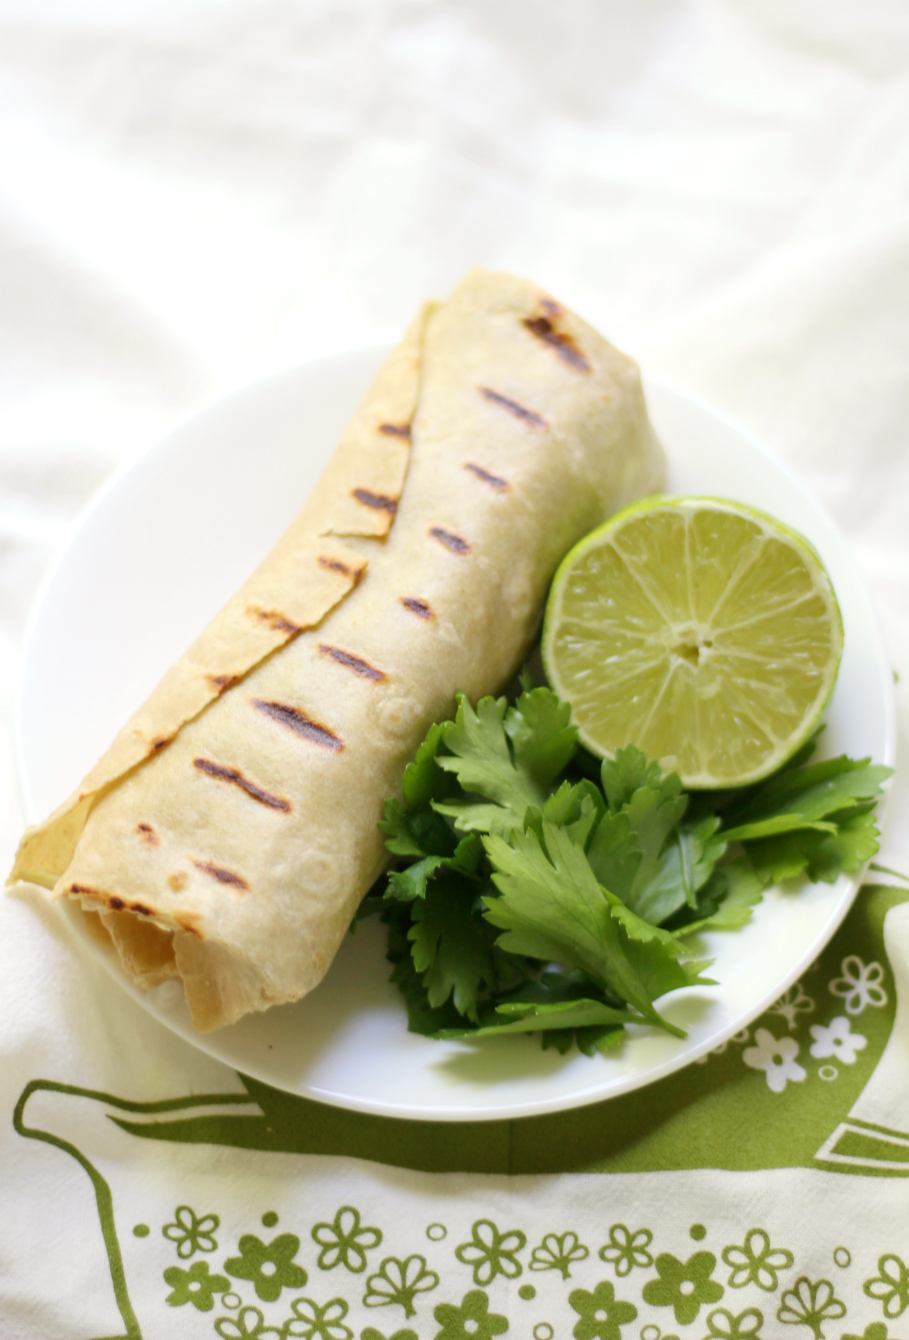 Grilled Green Goddess Wraps | Strength and Sunshine @RebeccaGF666 No more boring lunches! These Grilled Green Goddess Wraps are full of green goodness and nutrition with a lima bean spread, broccoli, and hearts of palm! Gluten-free, nut-free, and vegan, these wraps are a healthy recipe that's school or work friendly and freezable!